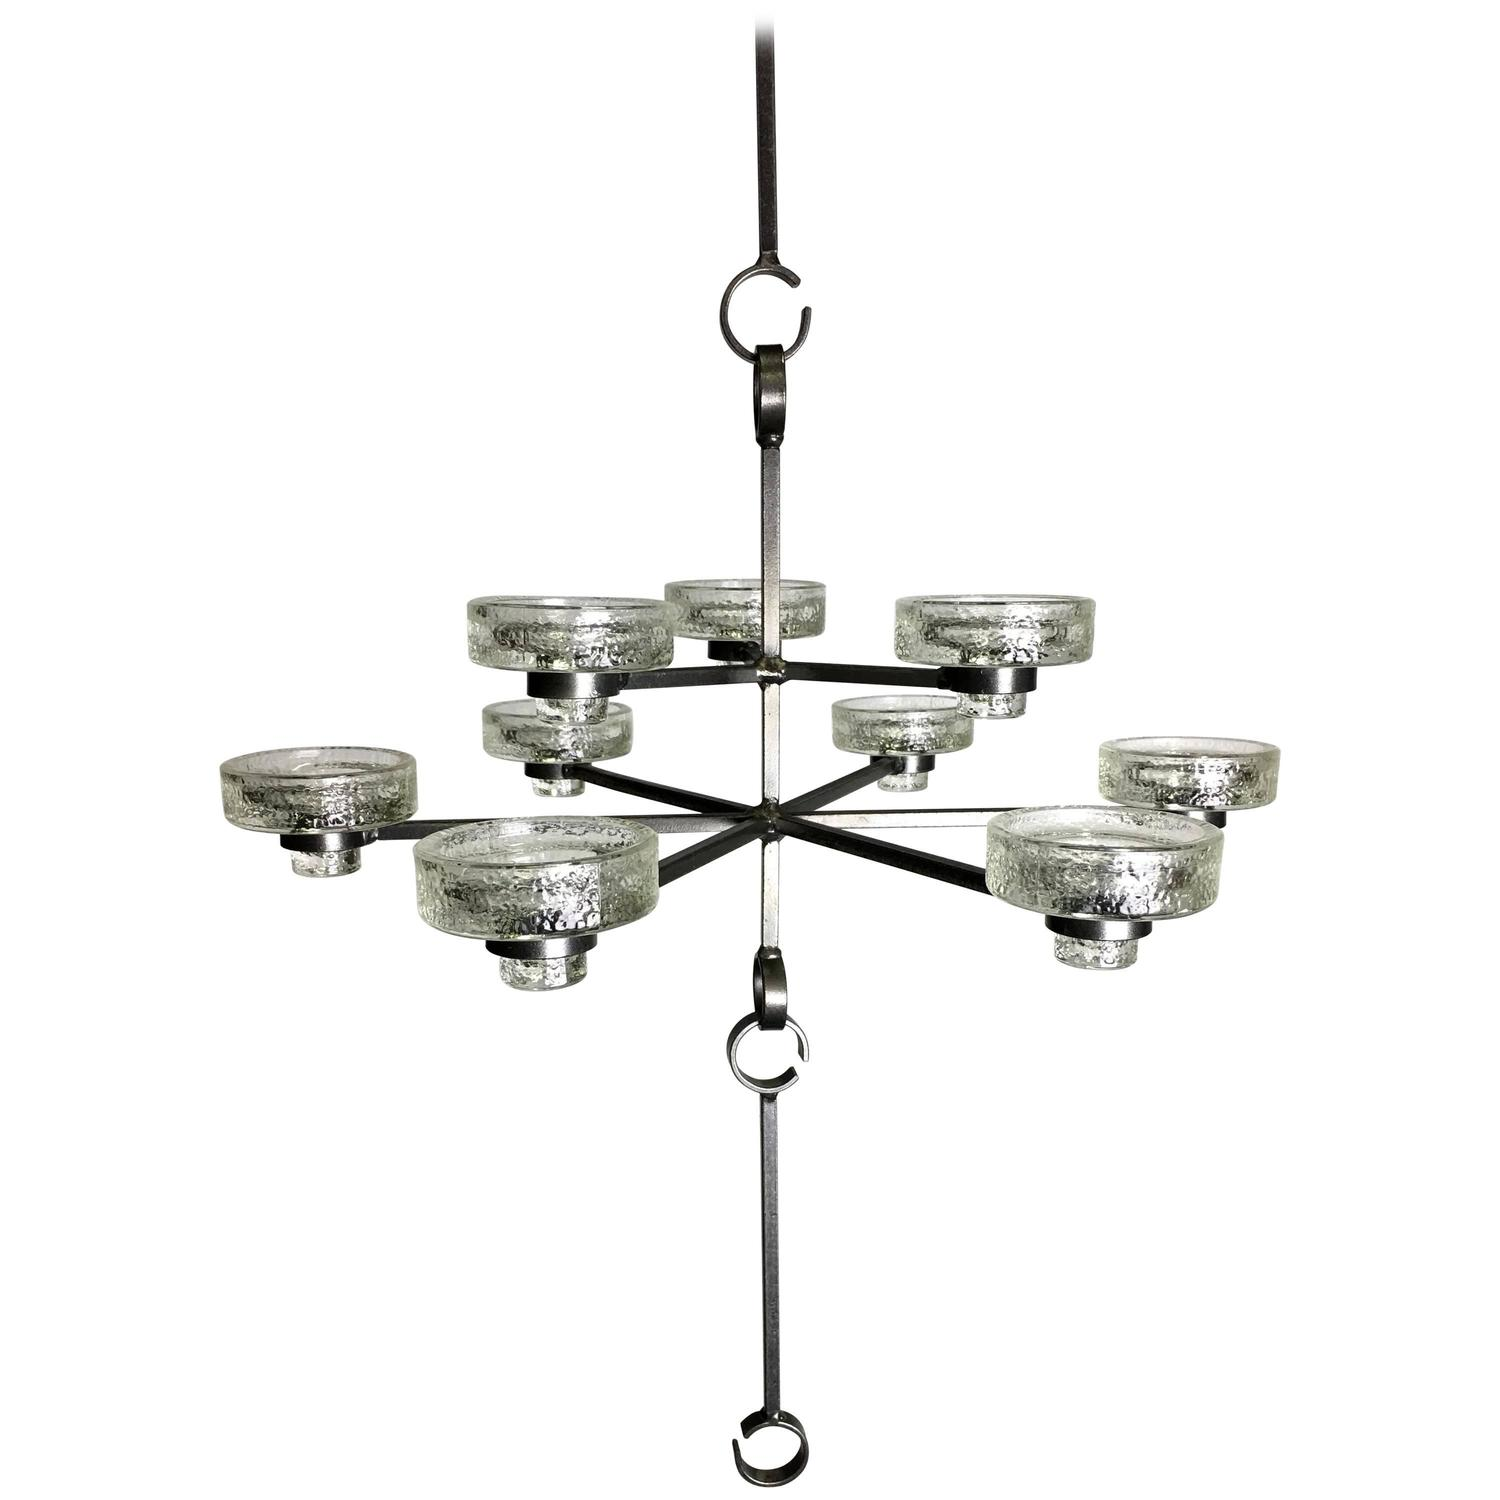 Rare Nine Light Candle Chandelier by Erik Hoglund for Boda Nova